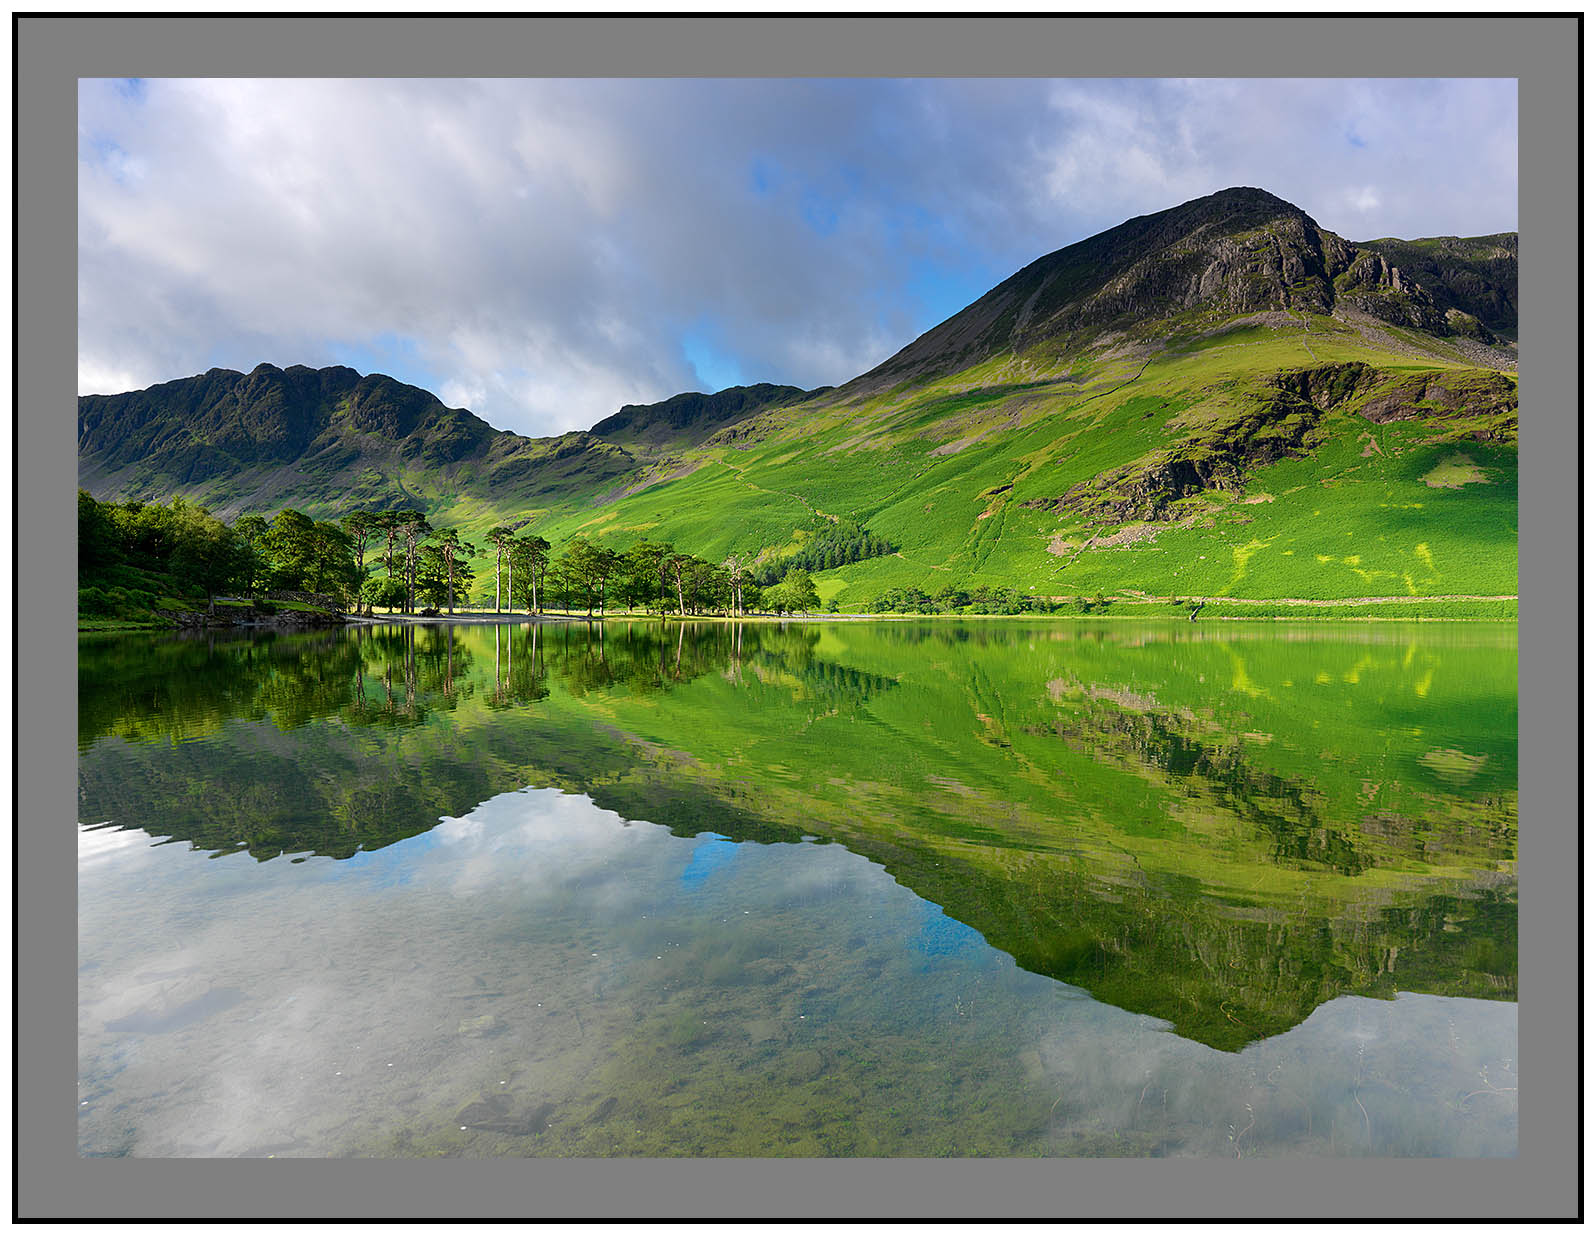 A 5334 Buttermere-Haystacks and High Crag in perfect symmetry